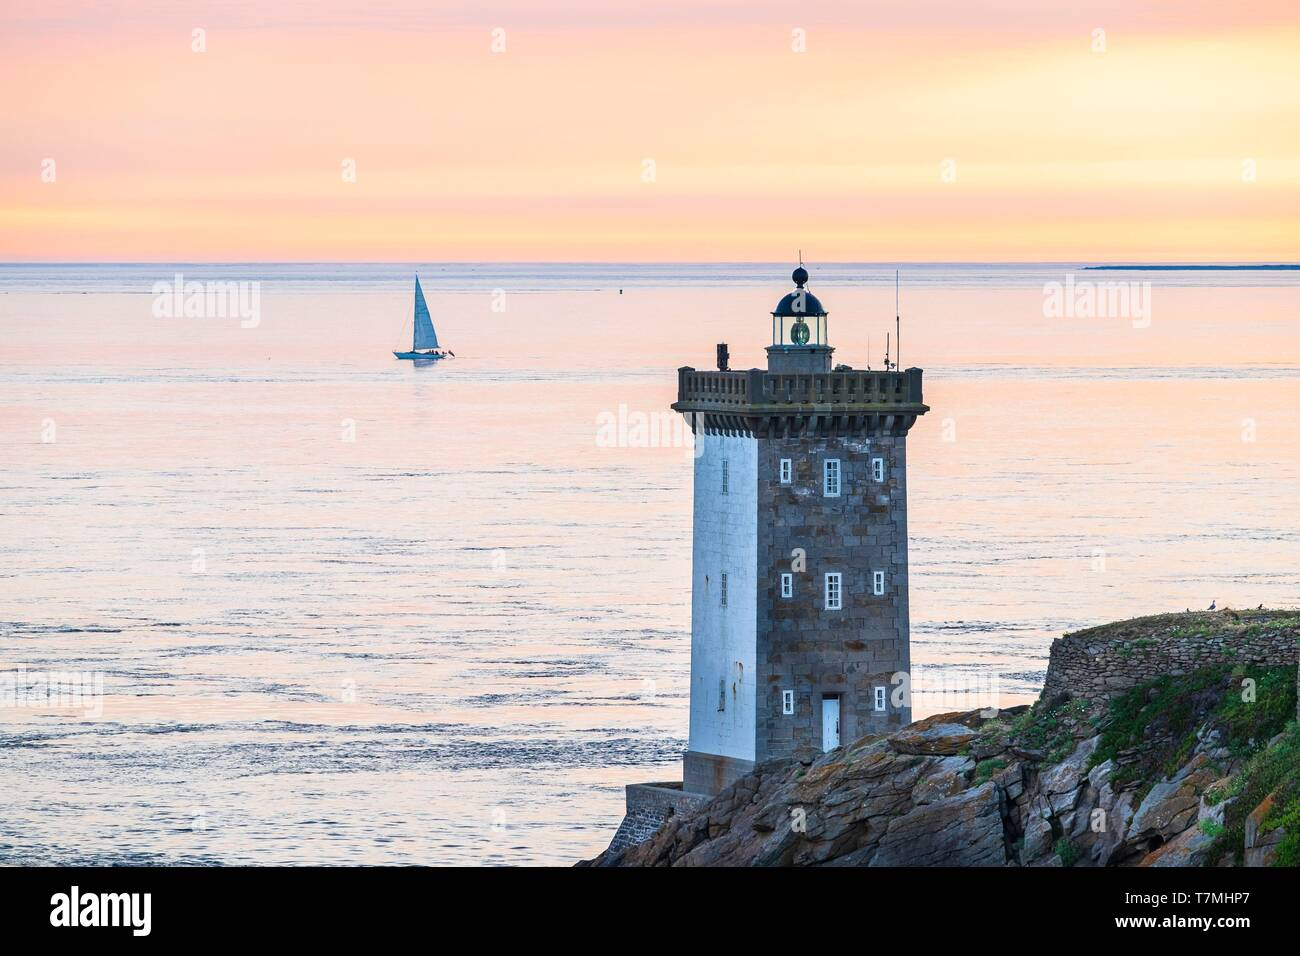 France, Finistere, Le Conquet, Kermorvan peninsula, Kermorvan lighthouse built in 1849 Stock Photo